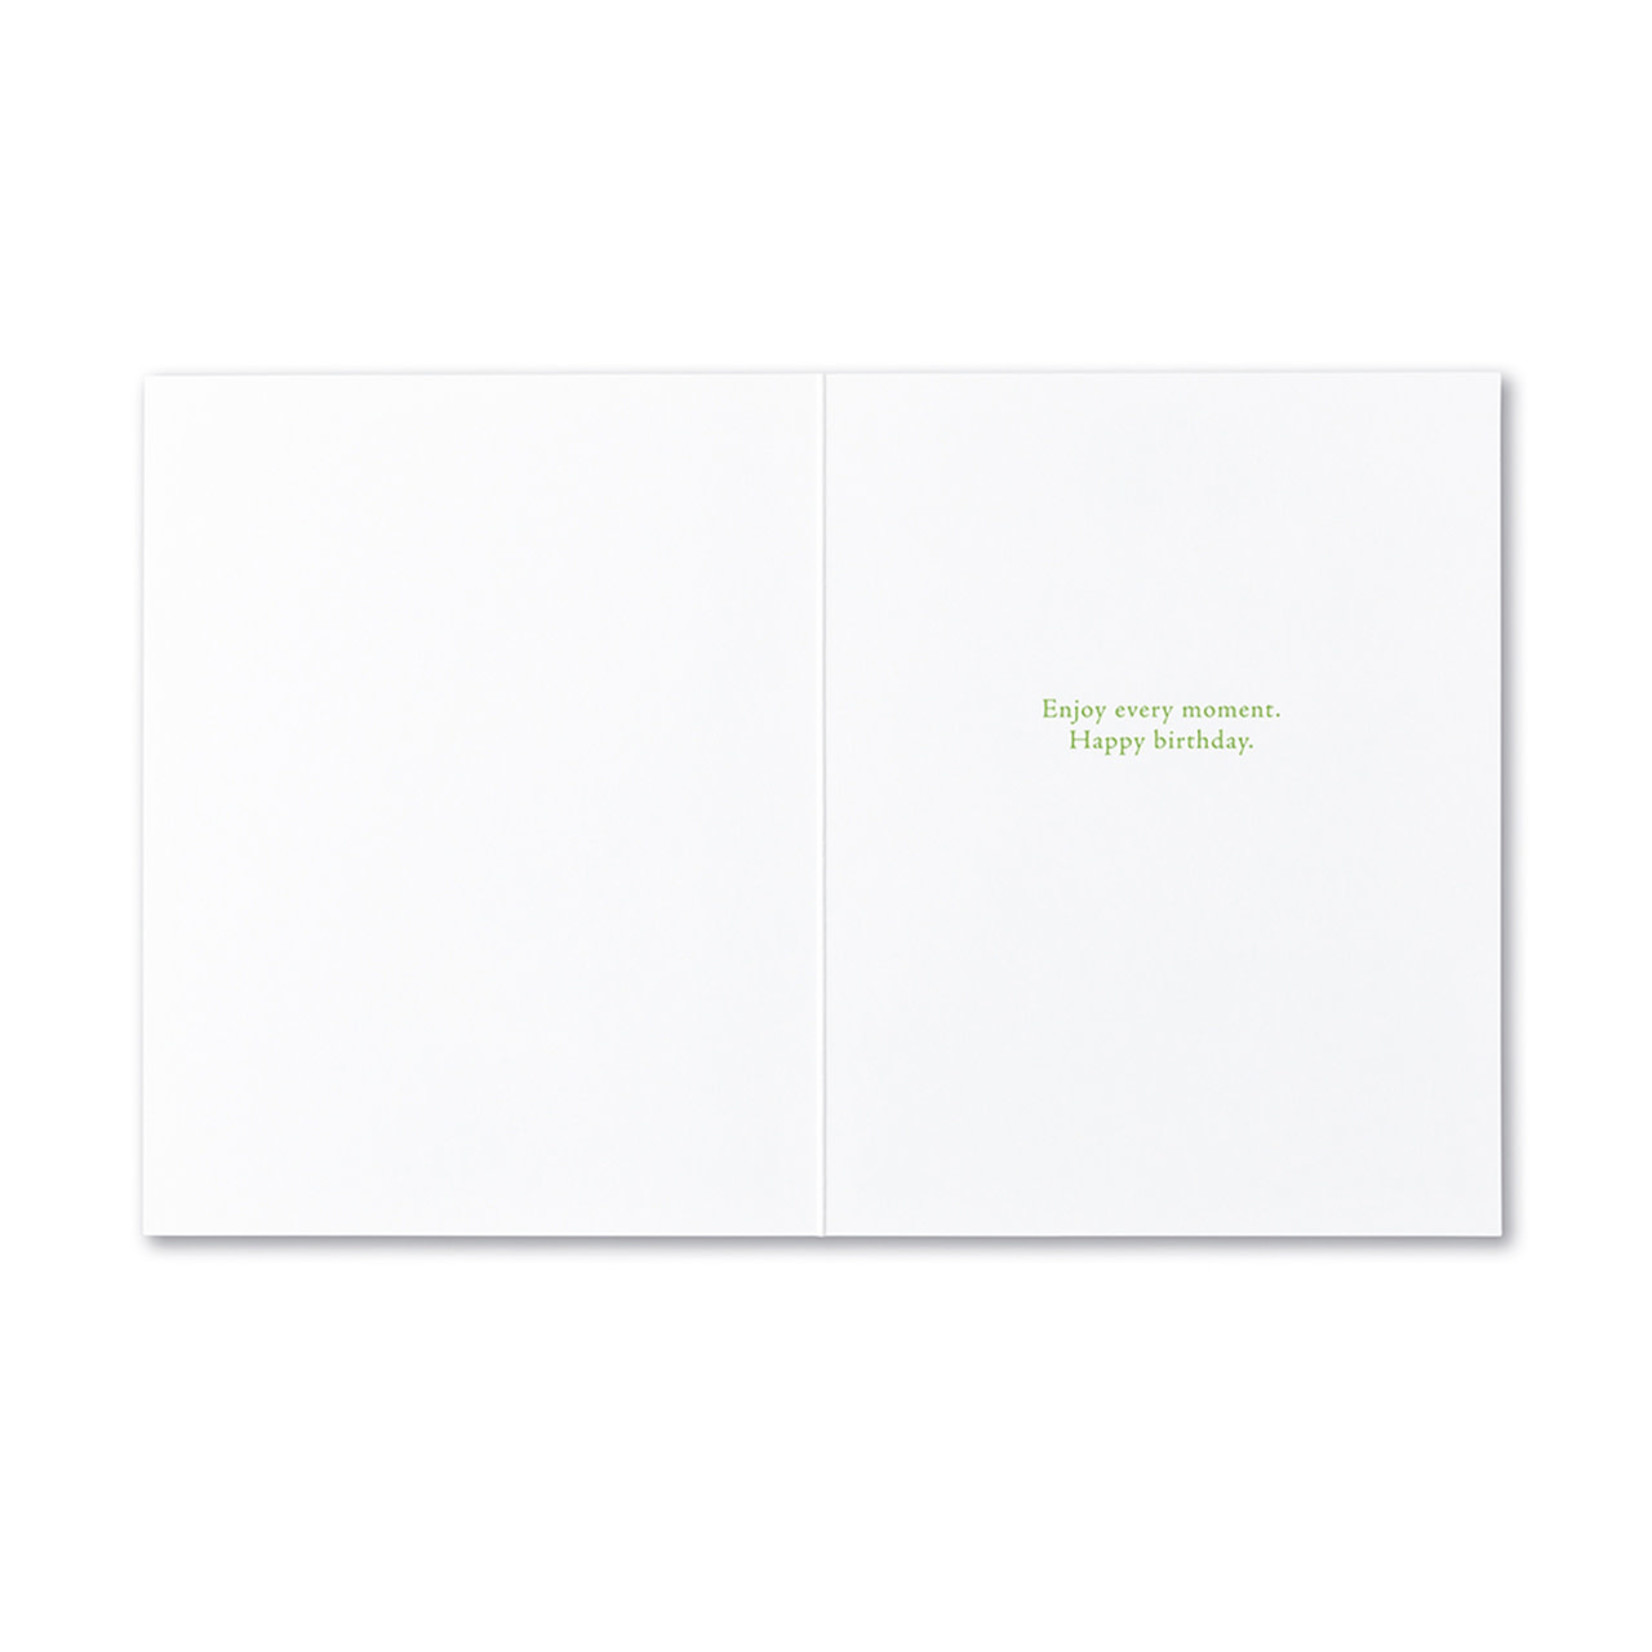 AT THE END OF THE DAY CARD